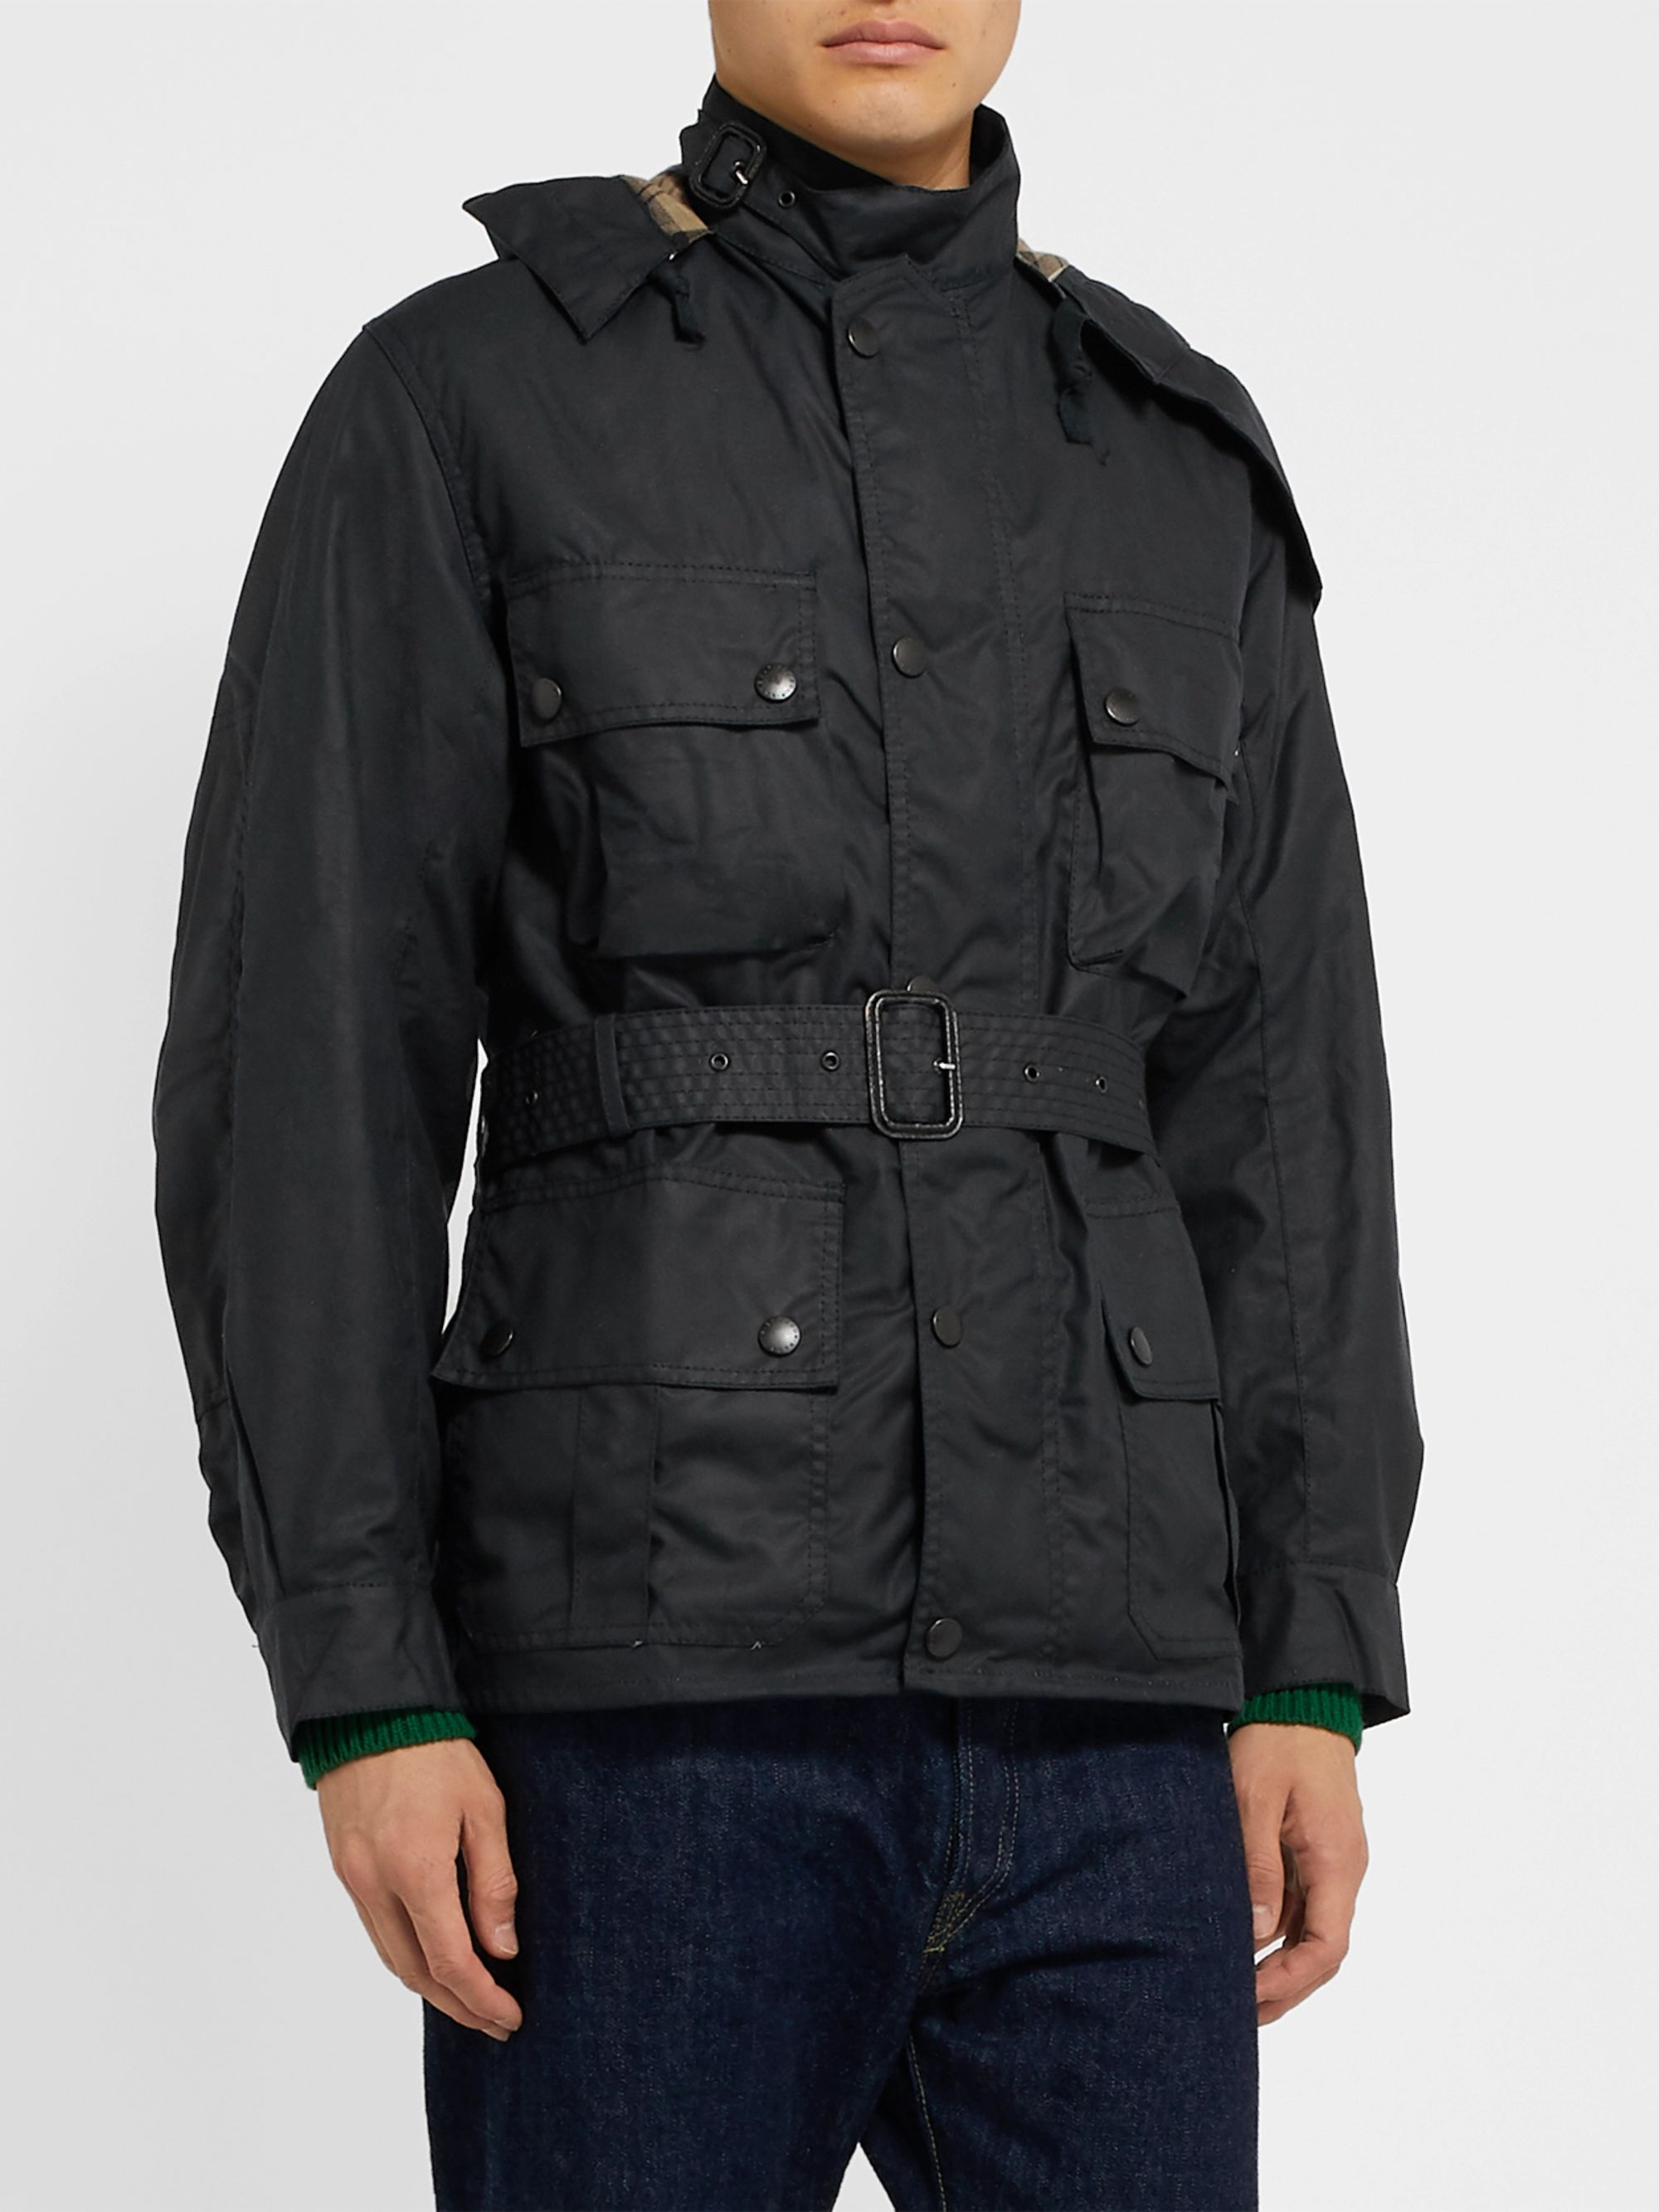 Barbour White Label White Label Ursula Slim-Fit Waxed-Cotton Hooded Jacket